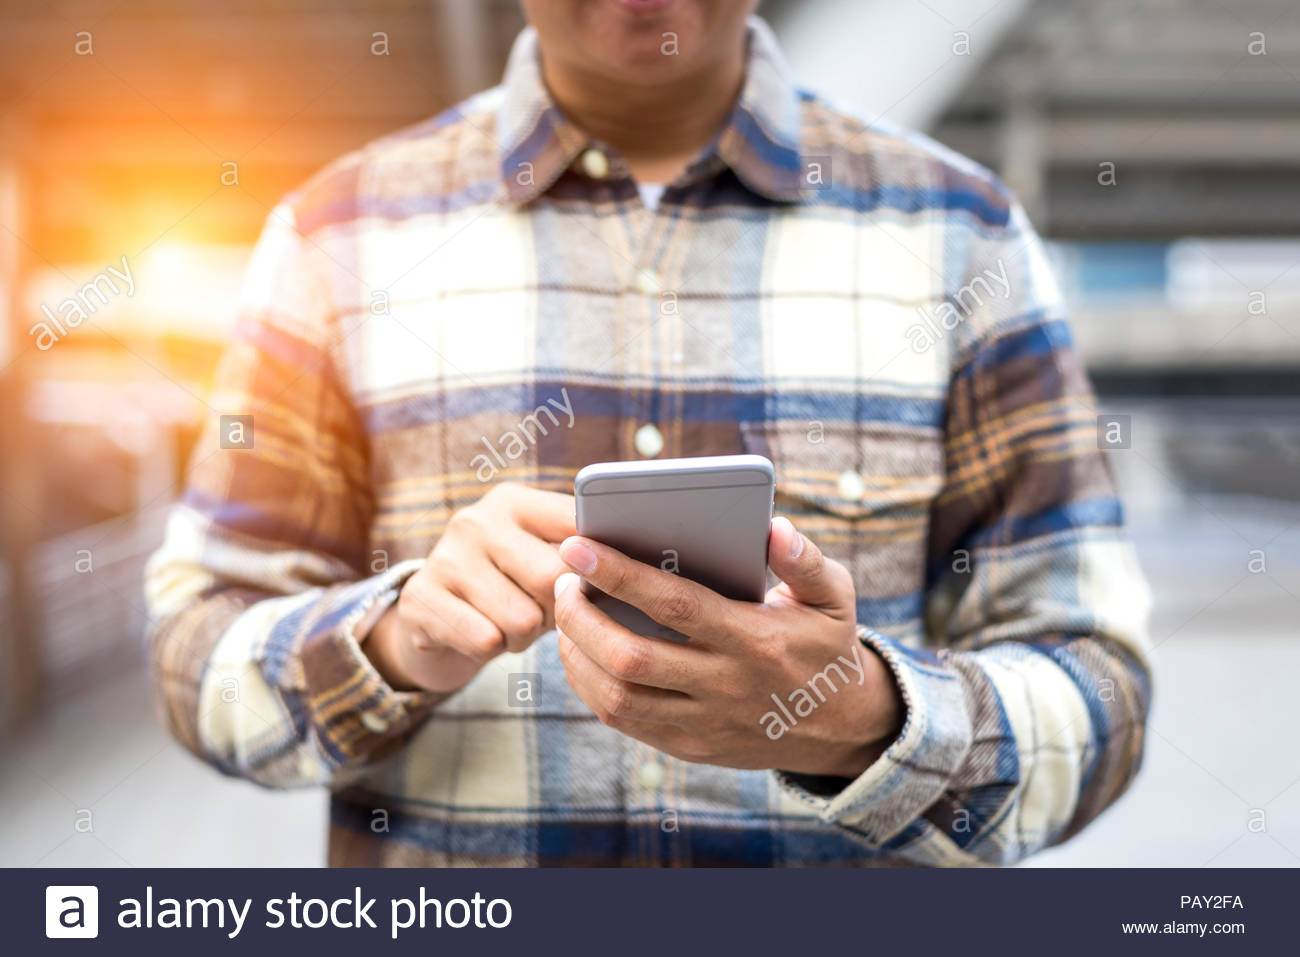 Man holding smartphone for searching Internet of Things